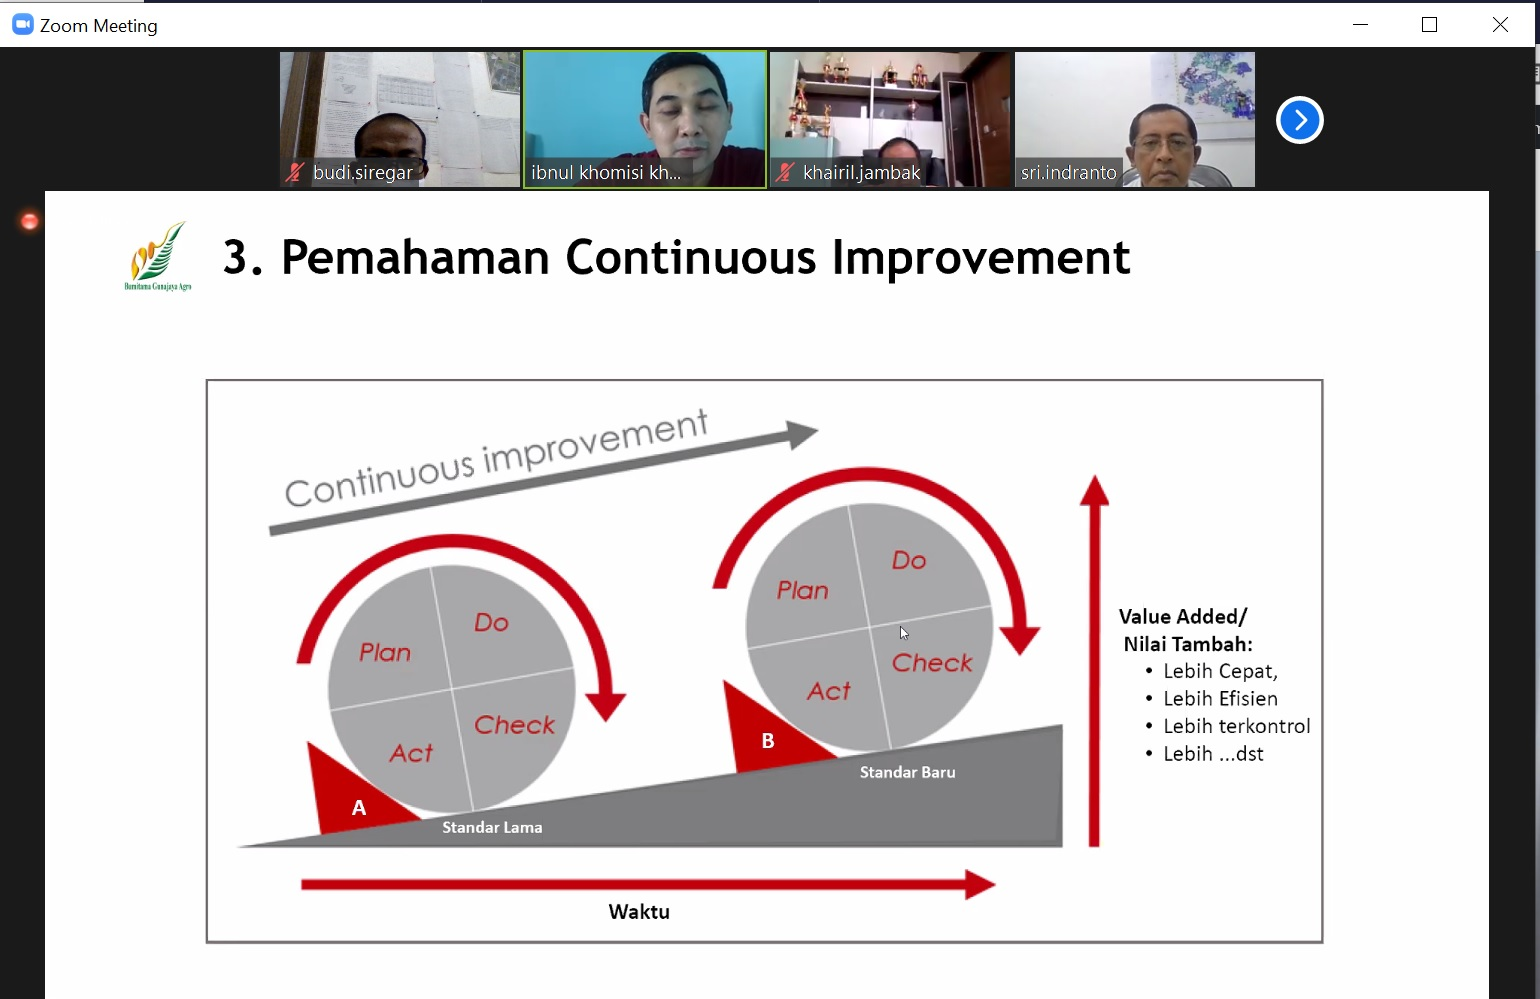 3. Pemahaman Continuous Improvement